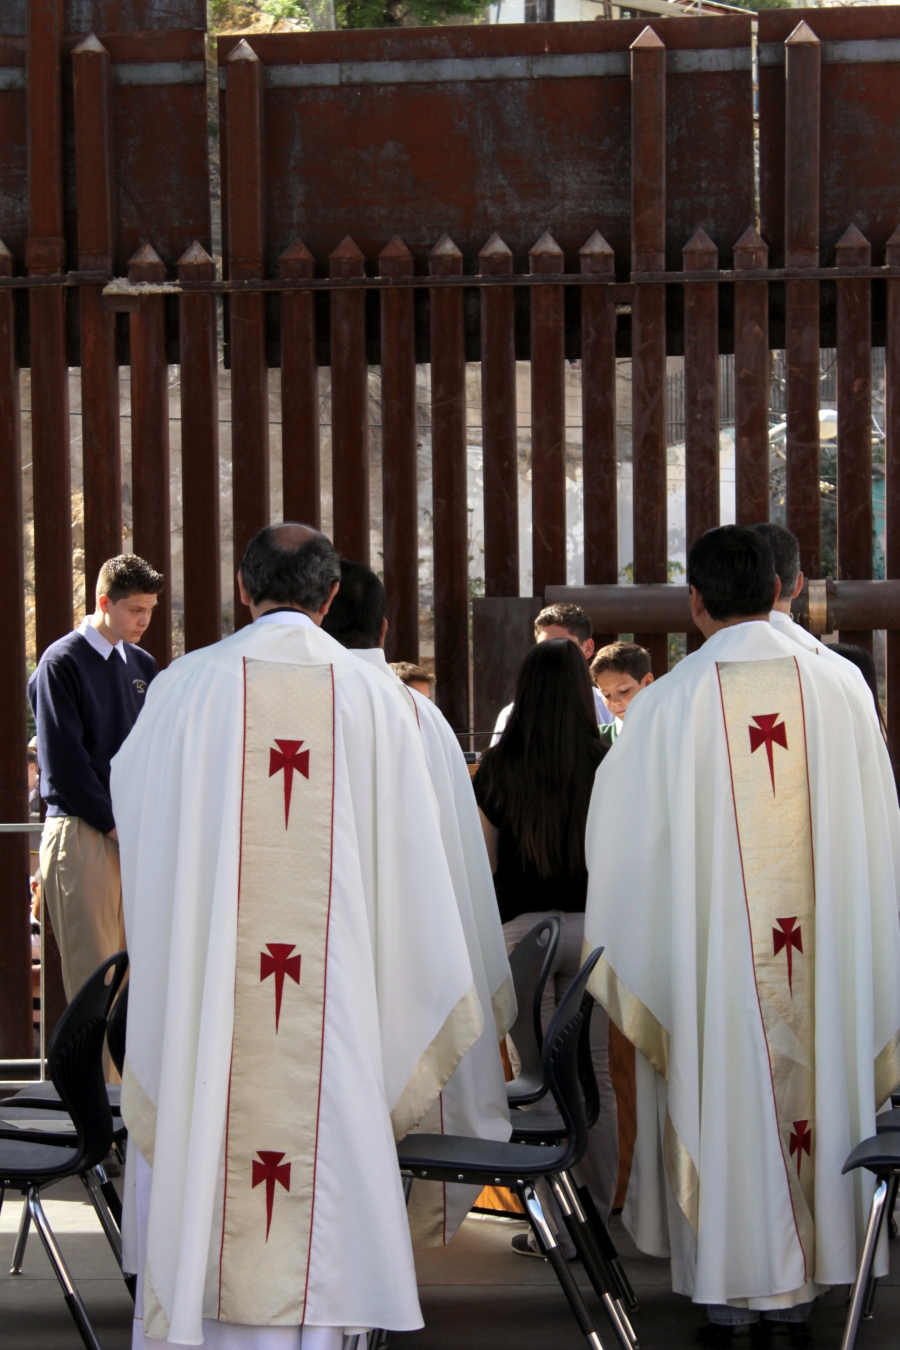 Bishops from El Paso Texas to Seattle Washington attended the mass in Nogales.